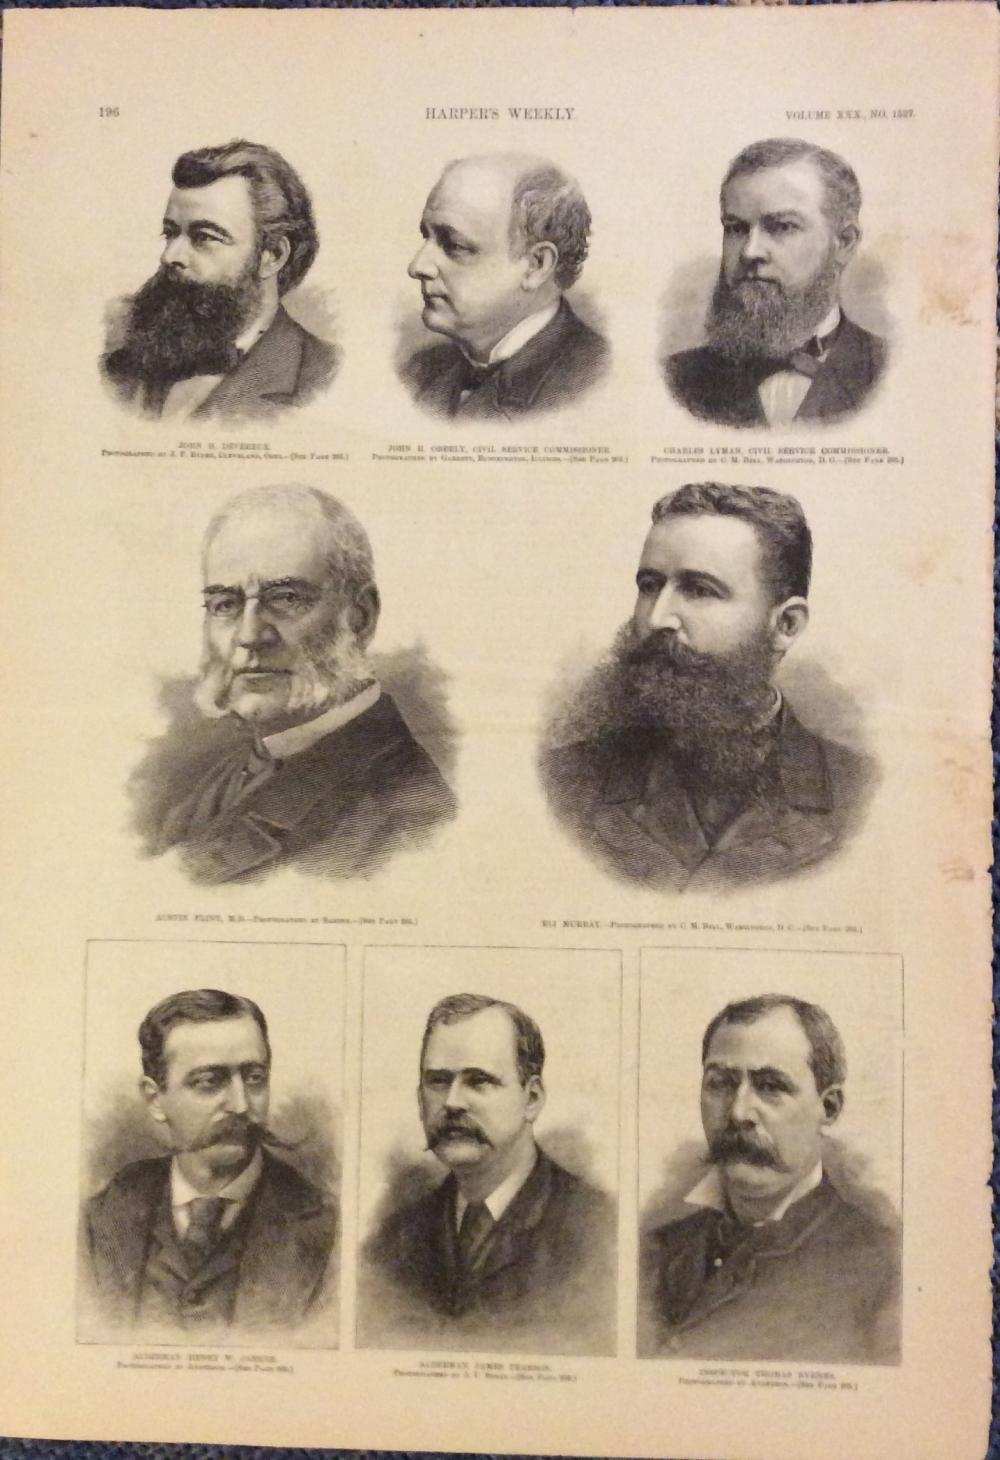 ANTIQUE 1886 Harper's Weekly Full Page Engraved Portraits Of (8) Various Late 19th Century Movers & Shakers